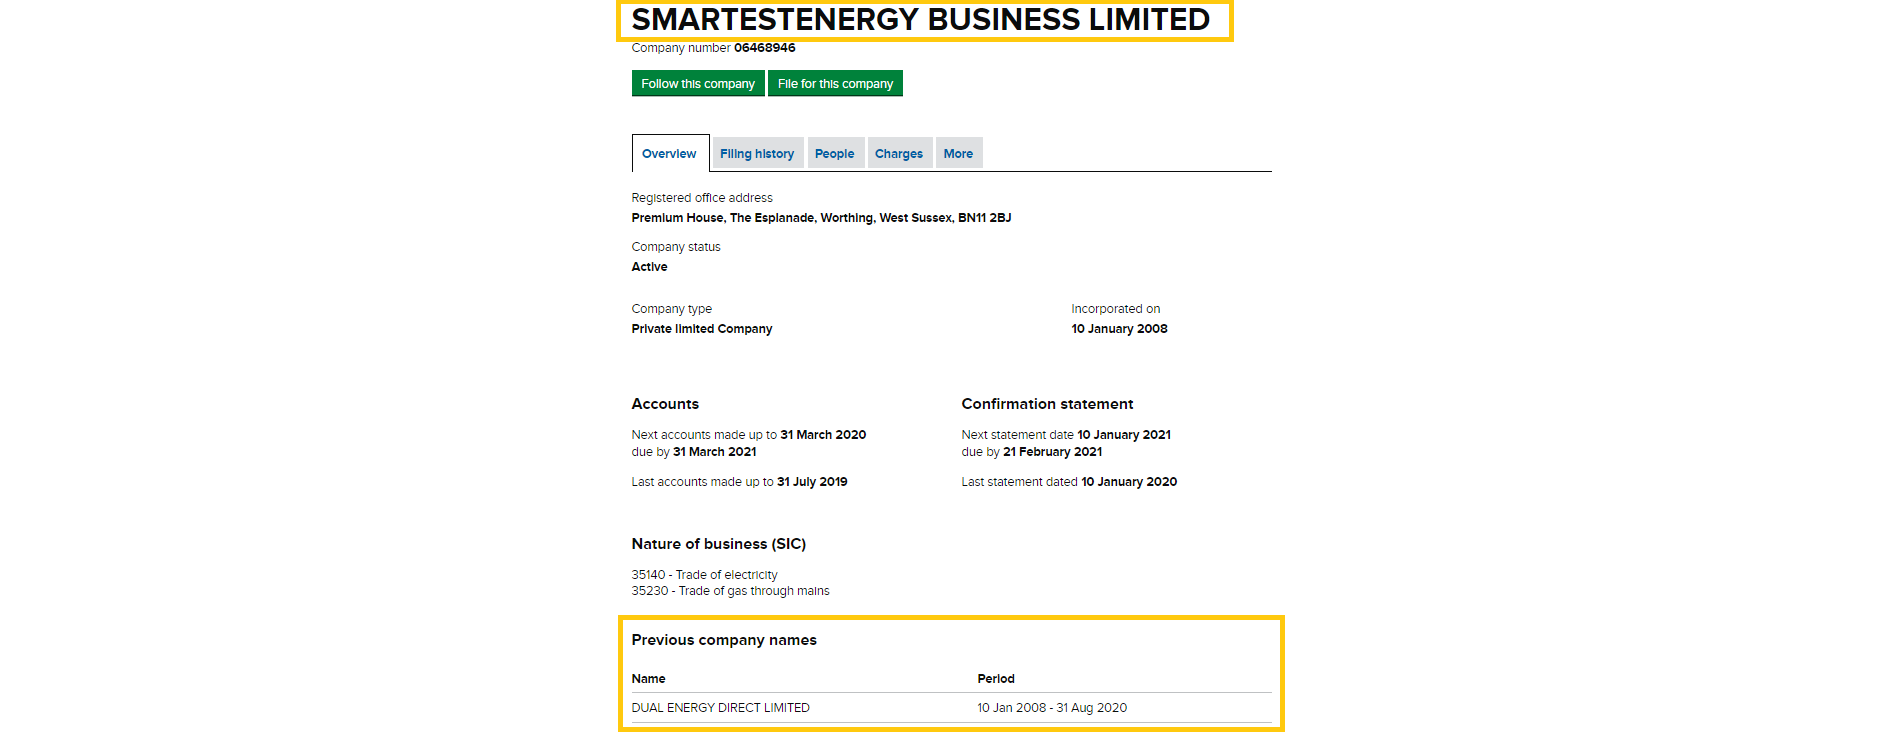 dual energy changed company name to smartestenergy